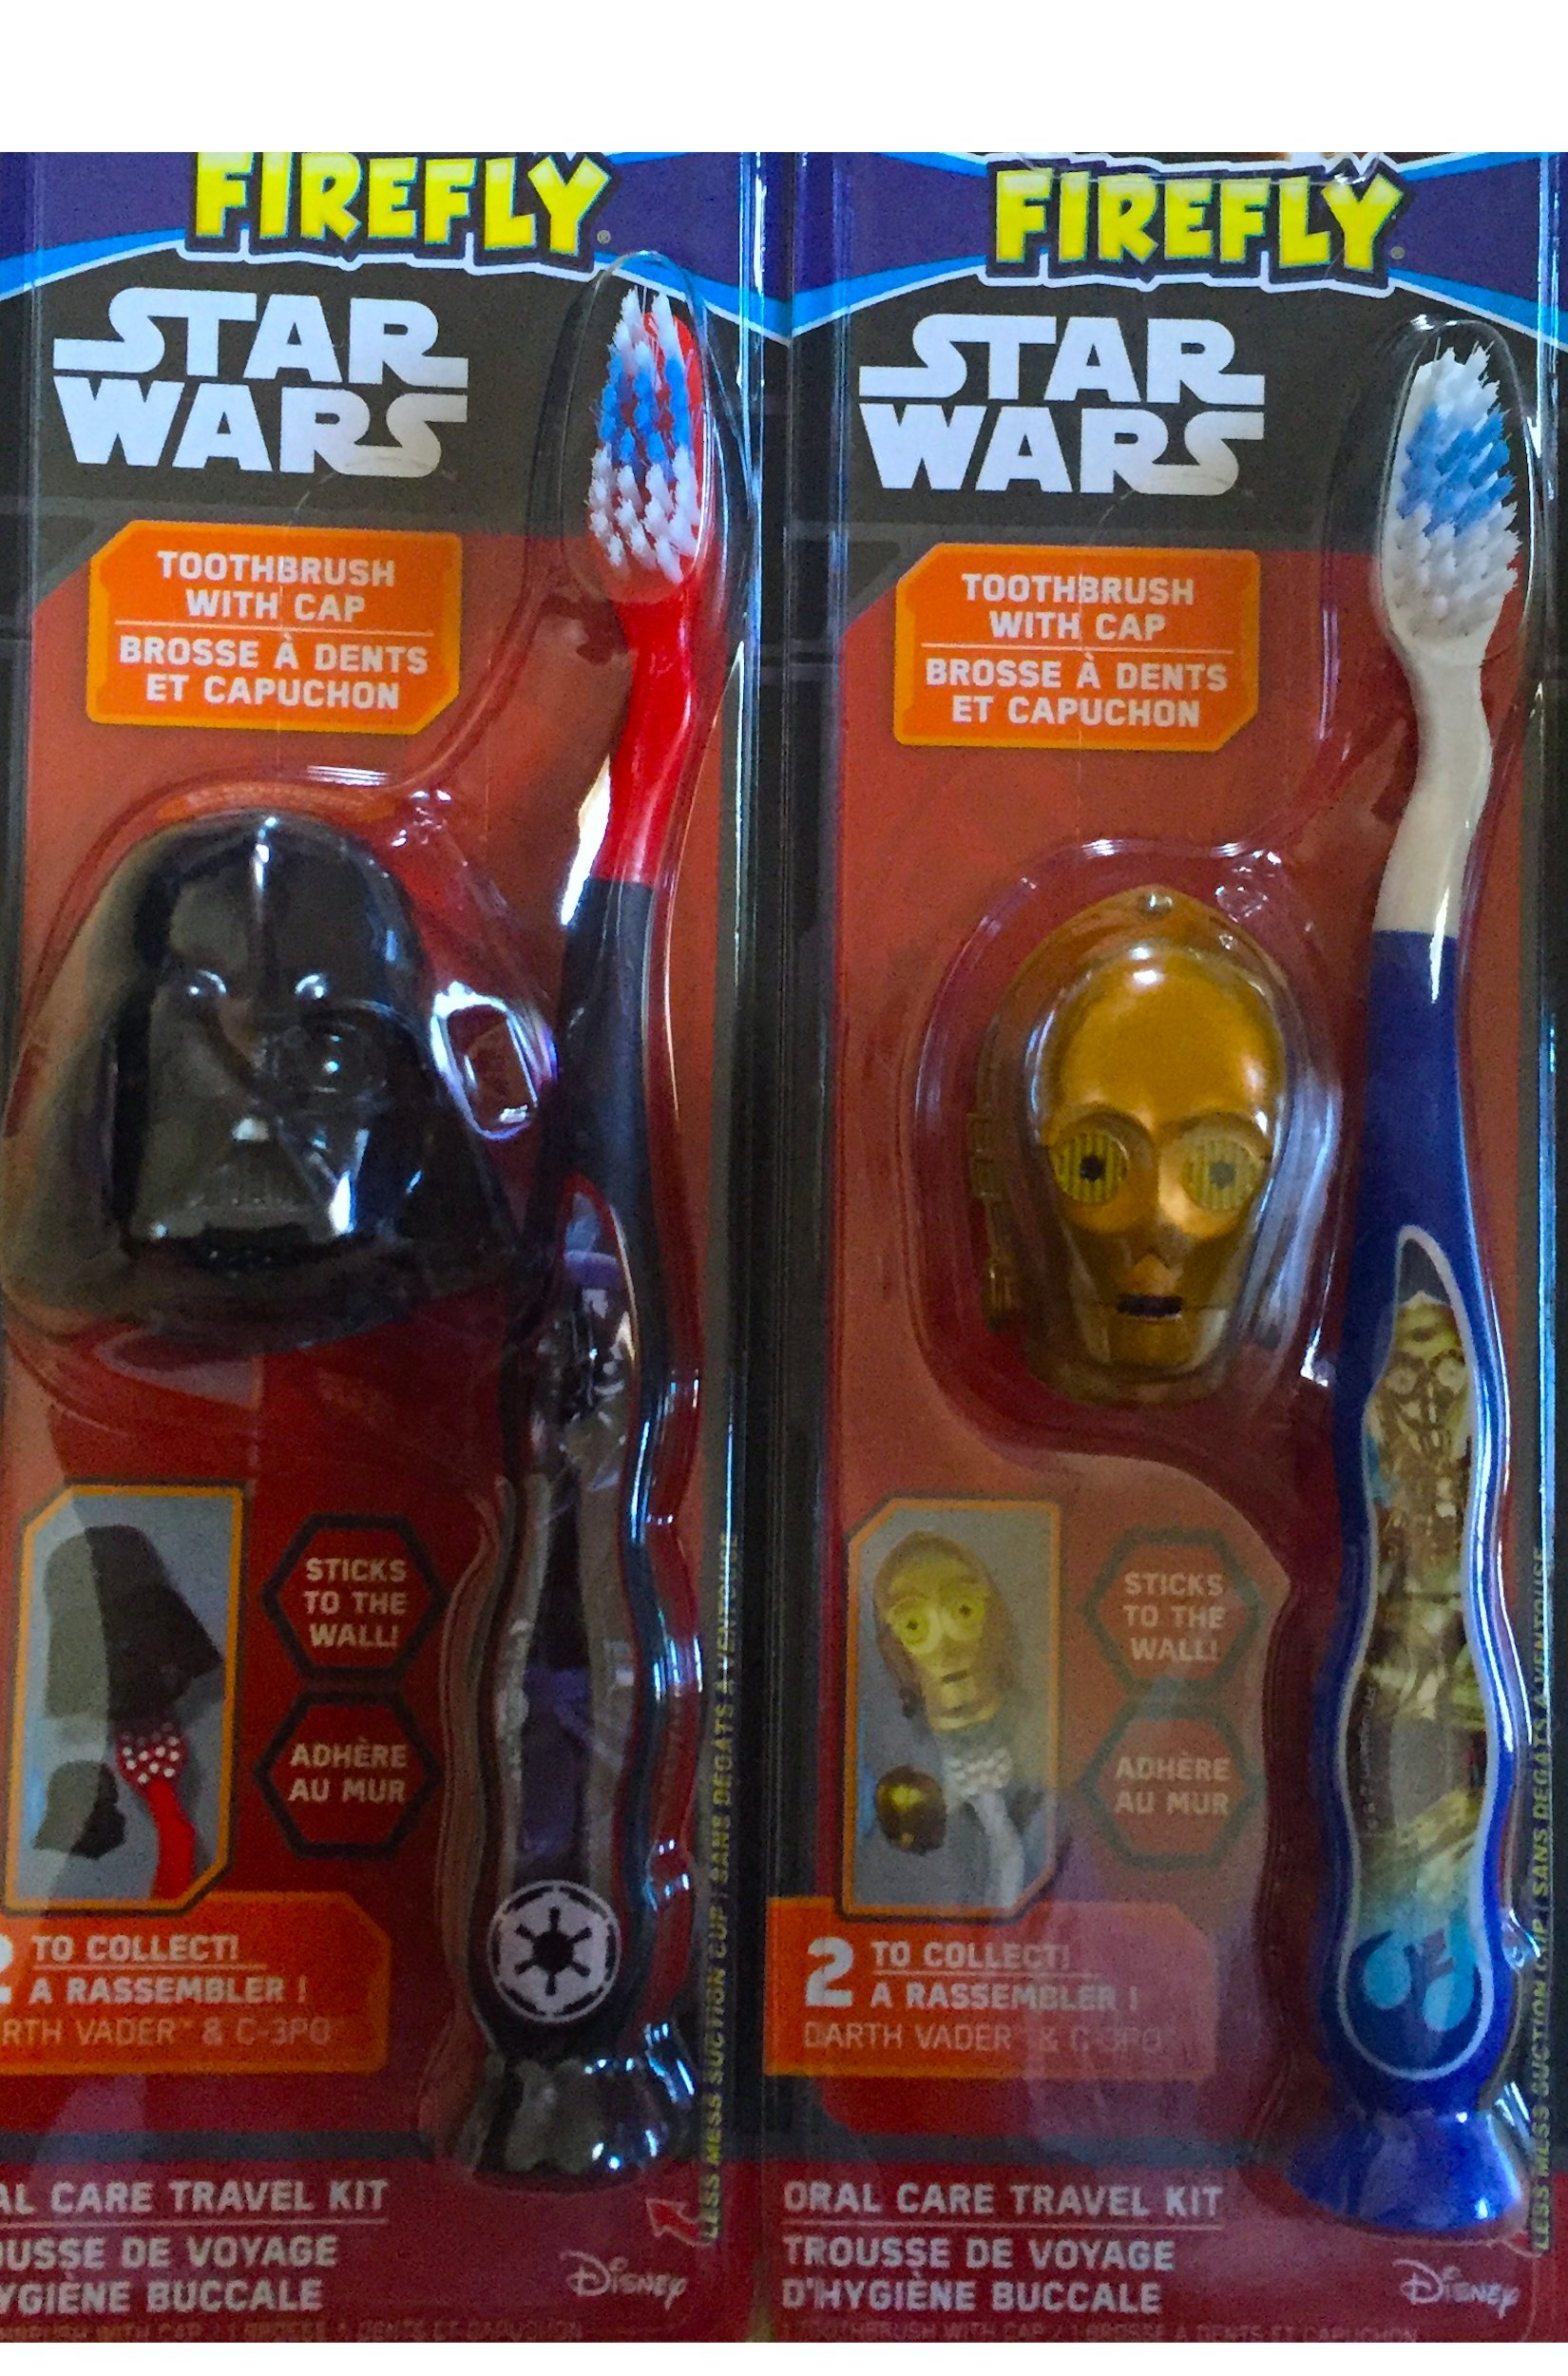 Children's Oral Care Travel Kit Star Wars Themed Toothbrushes Pack Of 2 (Brushes With Cap)